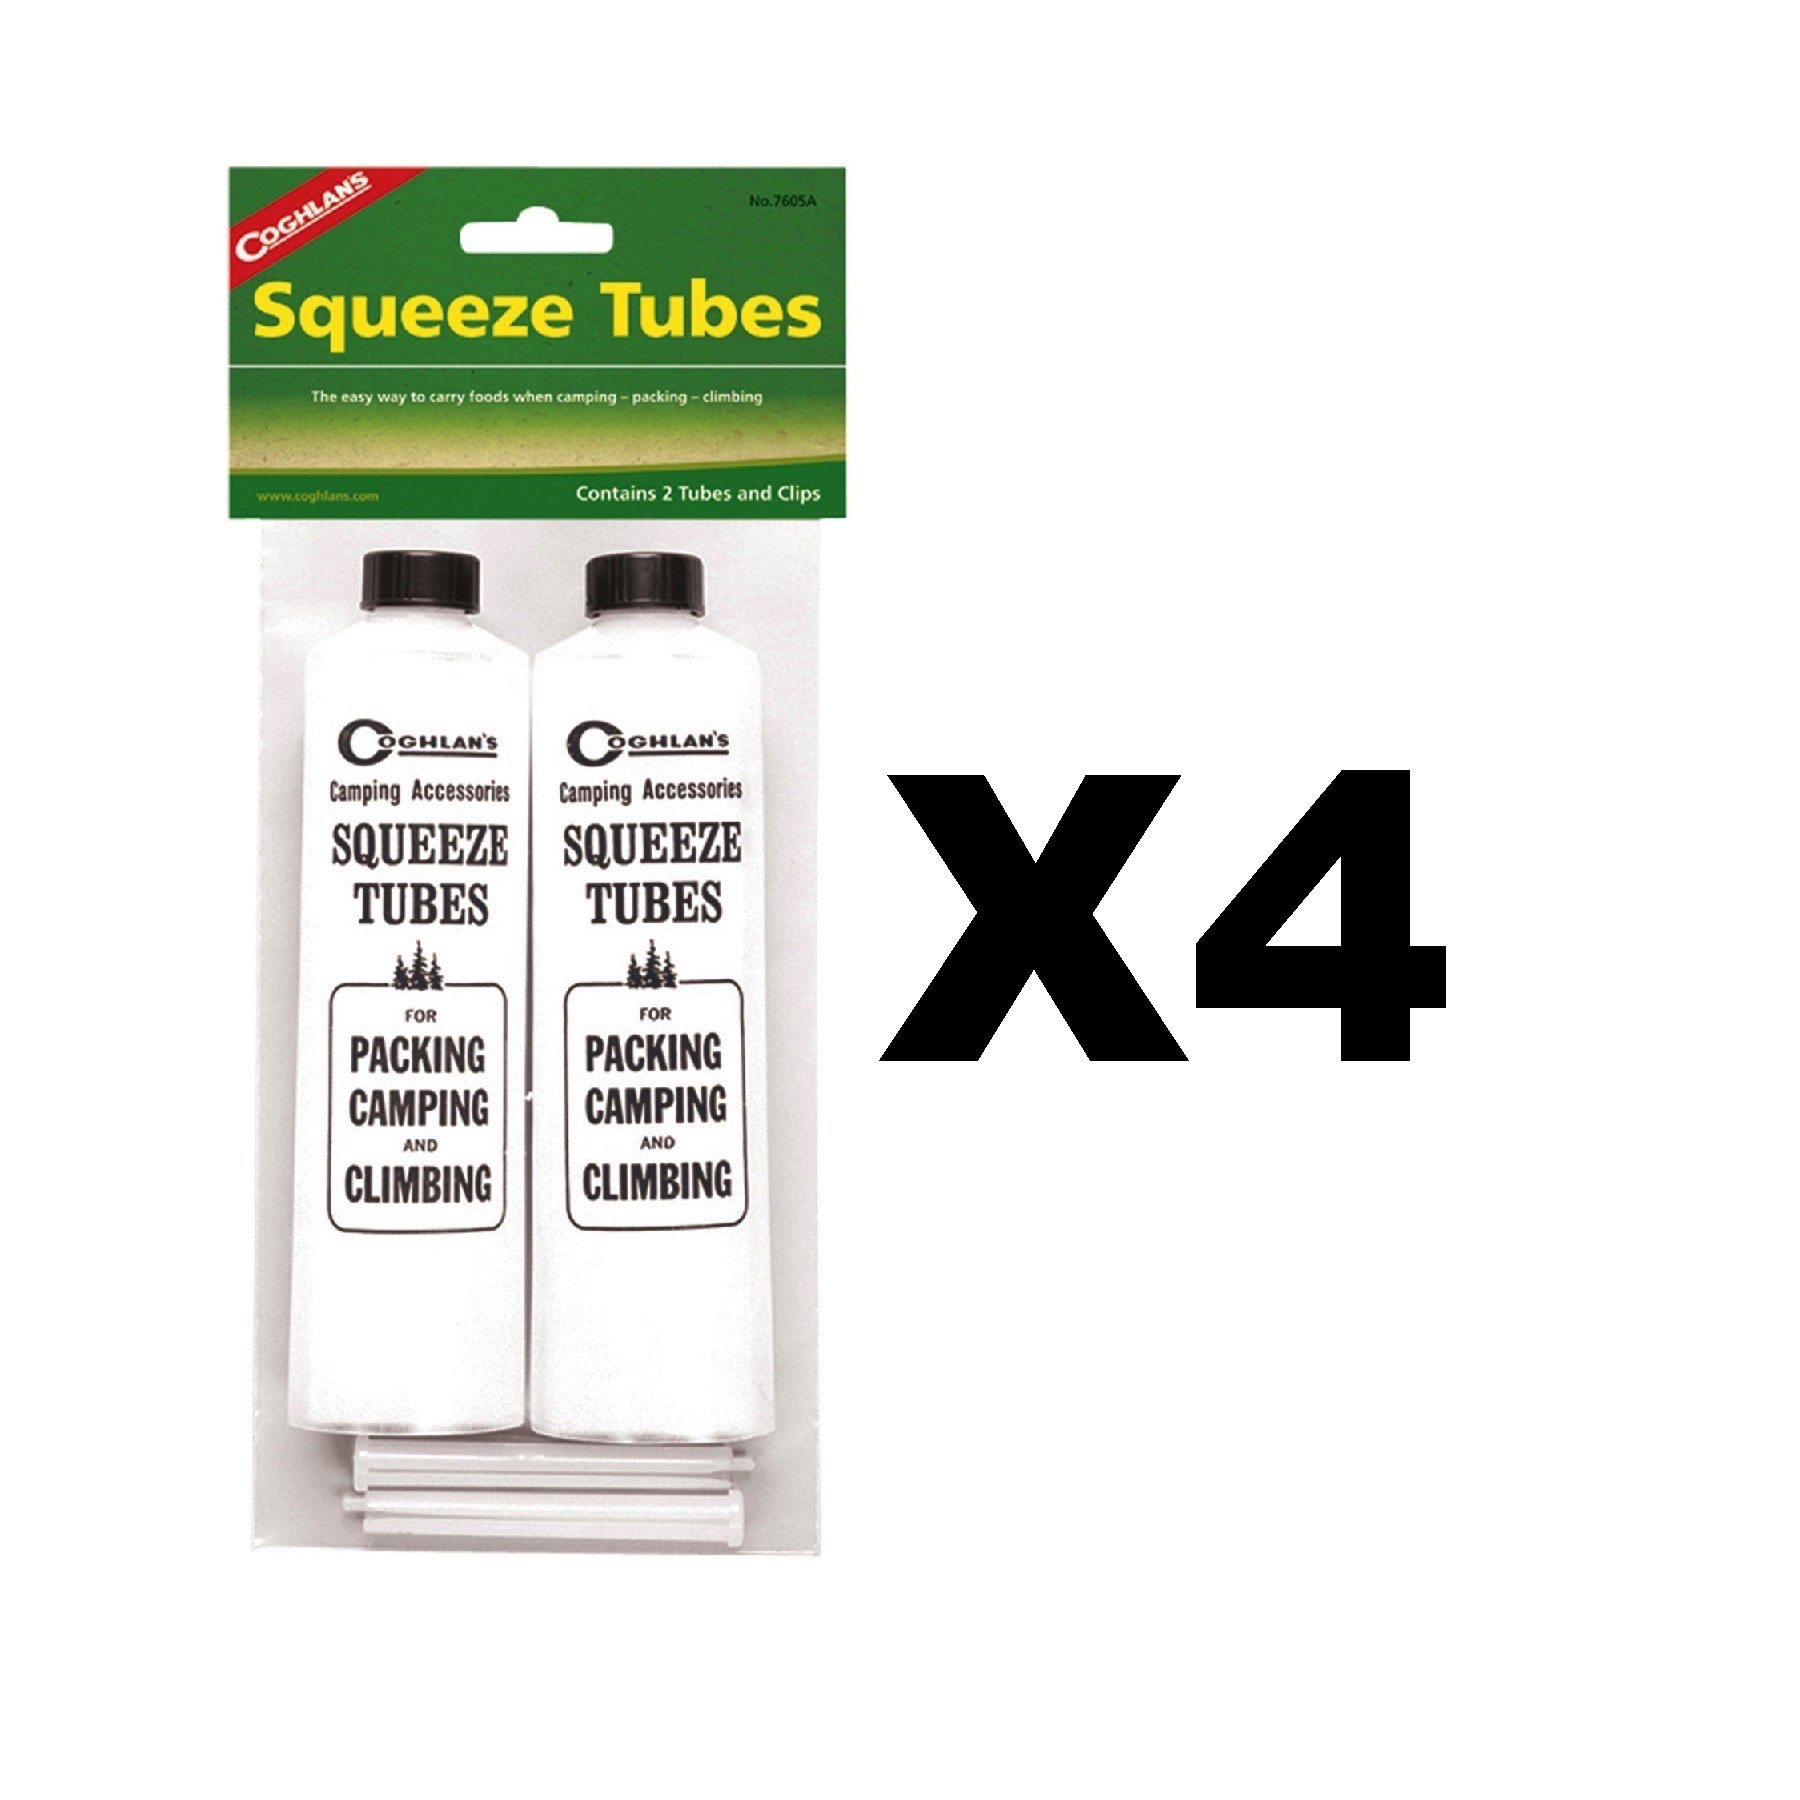 Coghlan's Squeeze Tubes Camping Reusable Plastic Food Storage (4-Pack of 2)